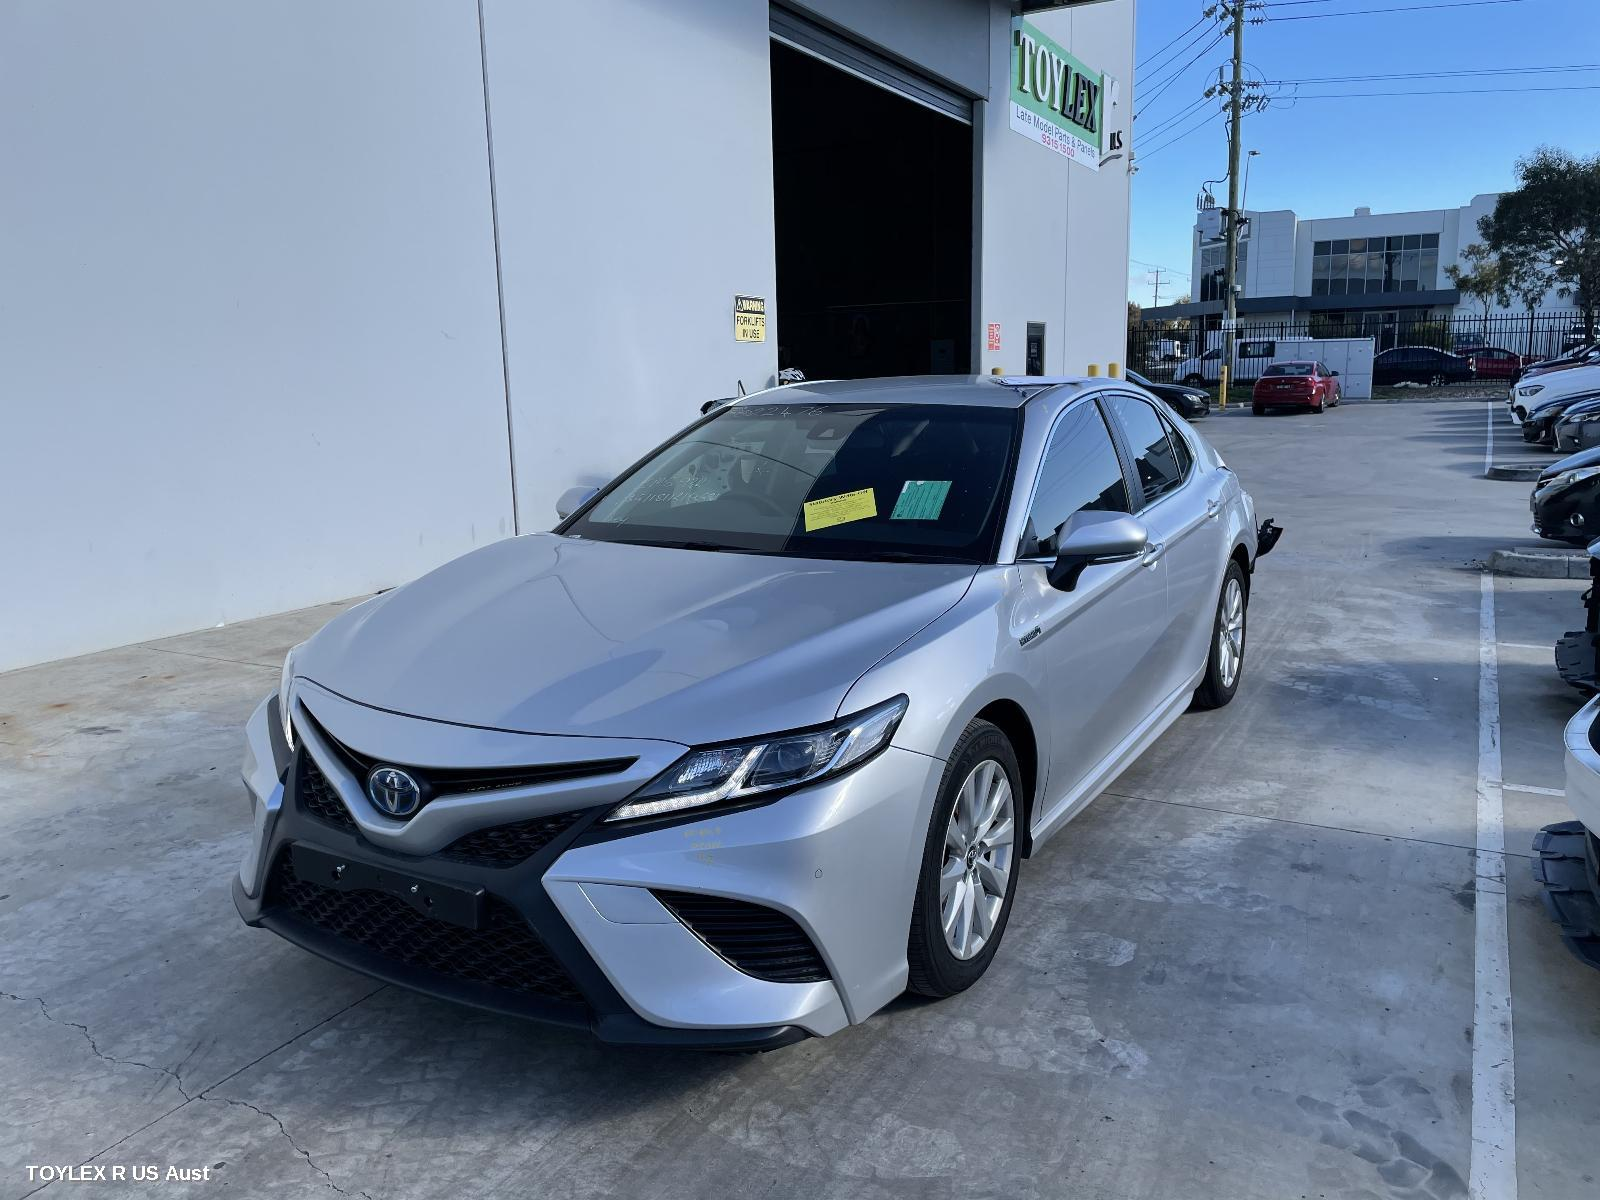 Toyota CAMRY ASCENT SPORT HYBRID 2.5L Engine Automatic FWD Transmission 09/17 - Current